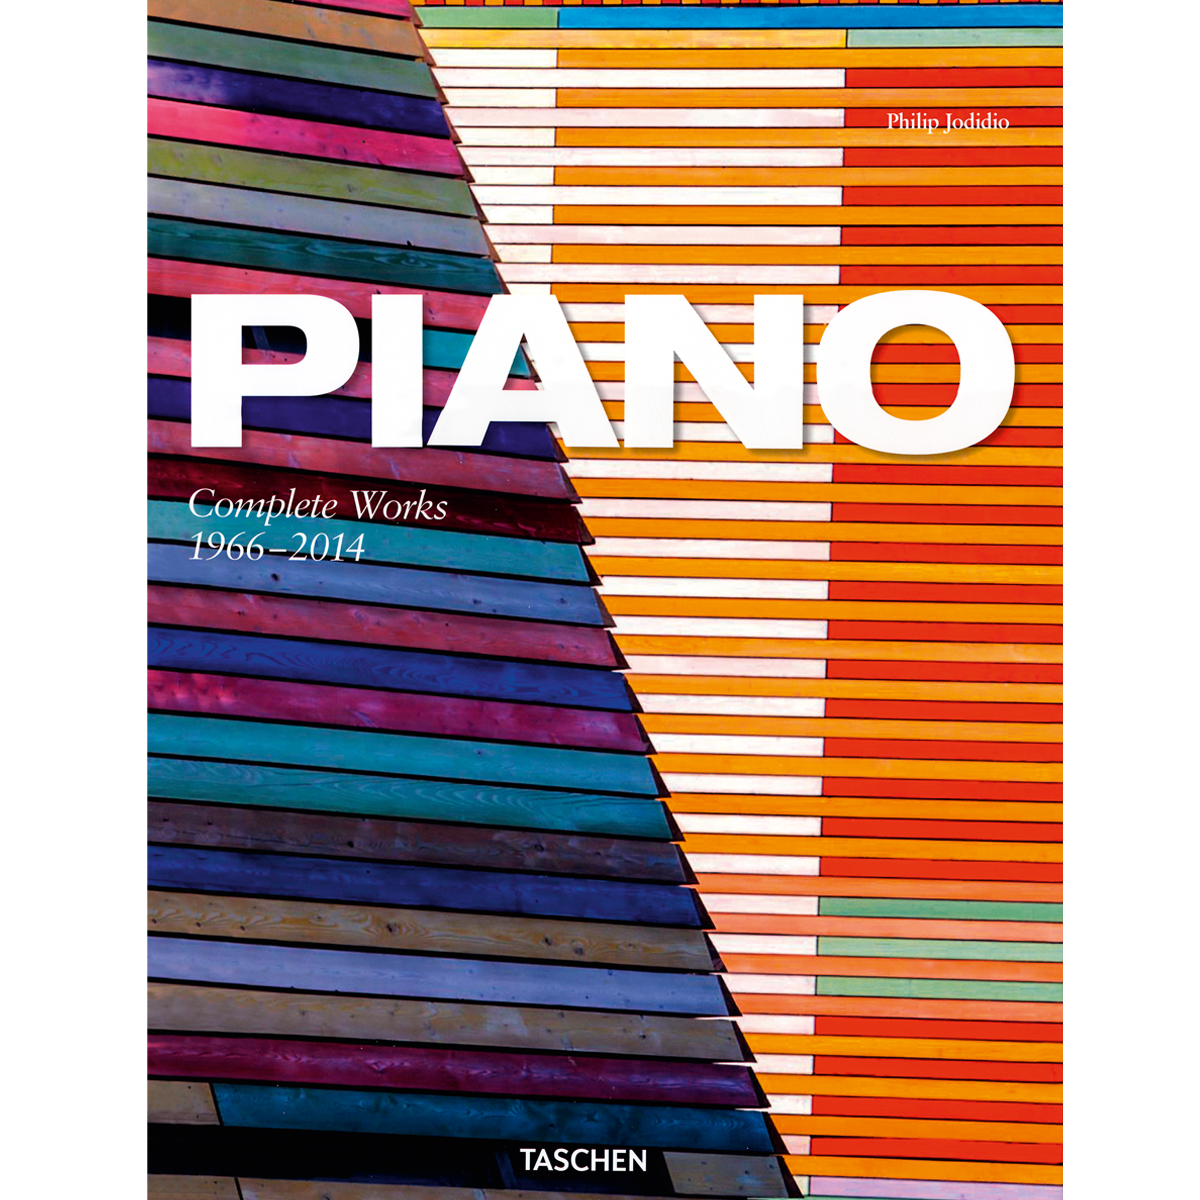 Piano. Complete Works, 1966-2014